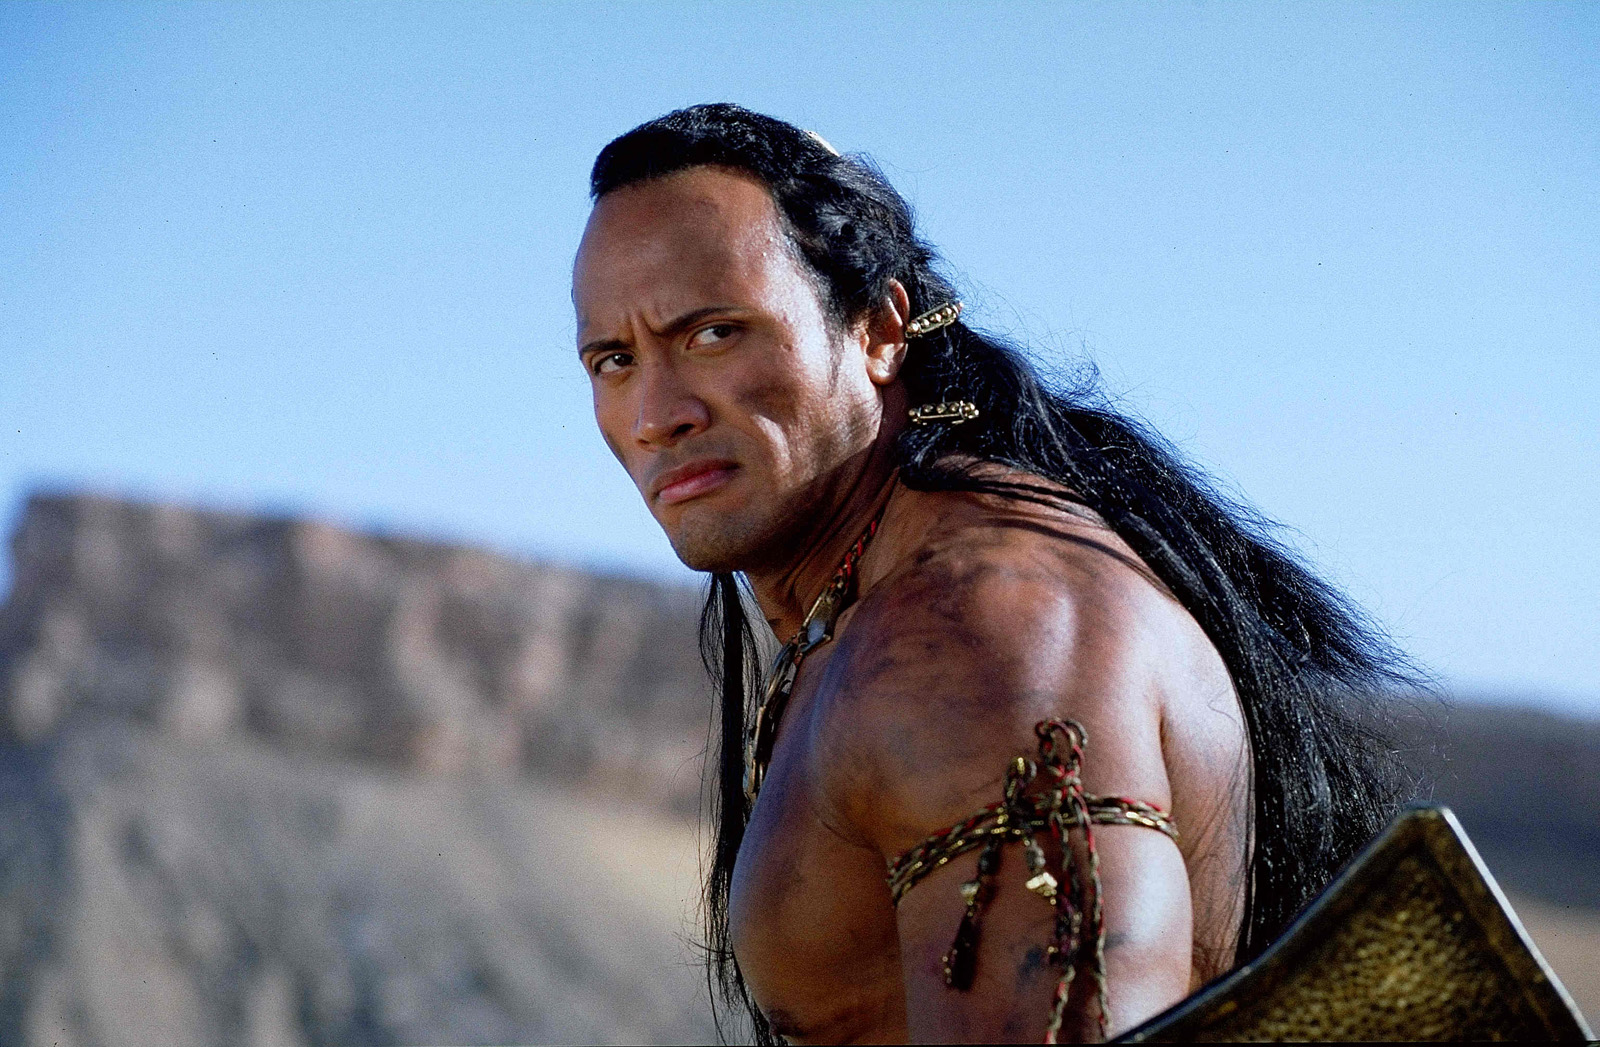 Dwayne Johnson back when he was billing himself as The Rock as Mathayus The Scorpion King (2002)